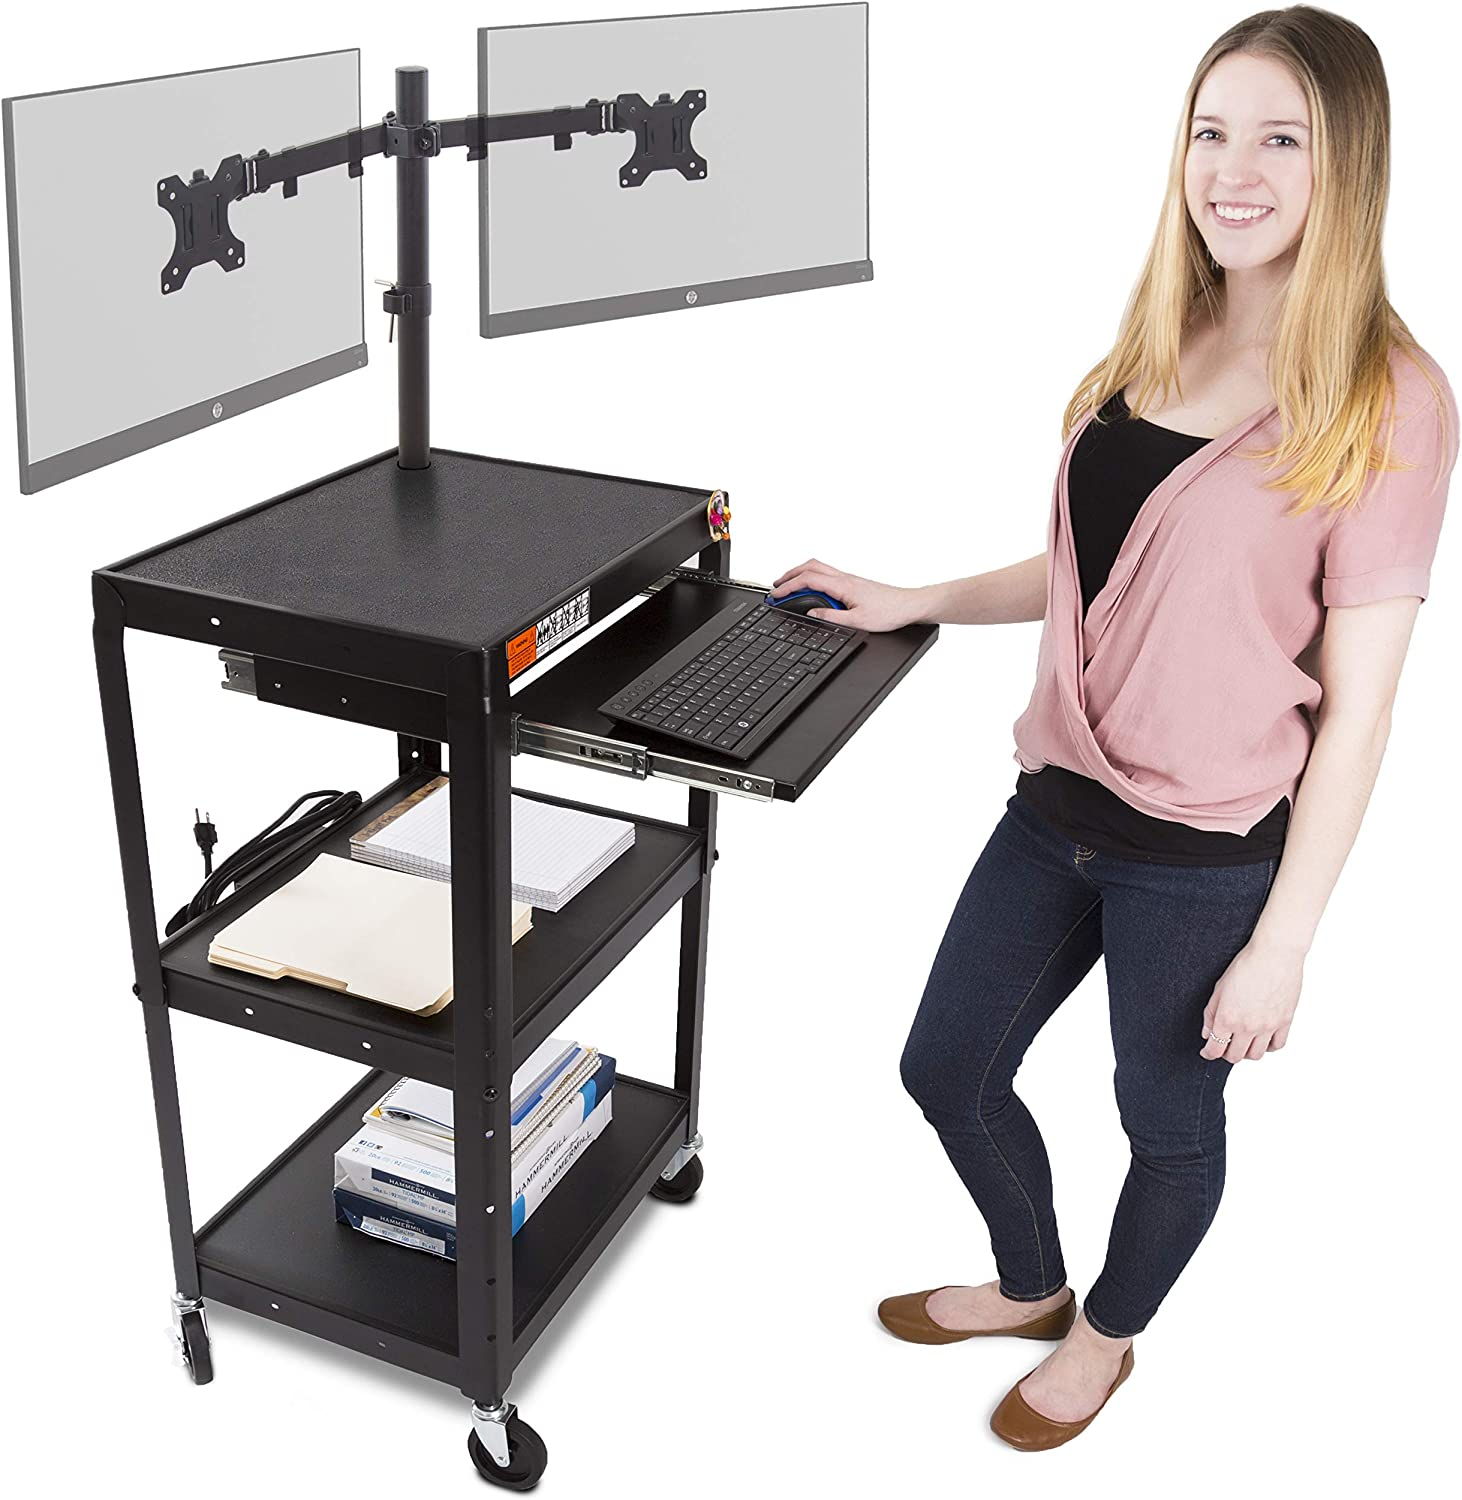 Line Leader AV Cart with Keyboard Tray and Dual Monitor Mount - Mobile Workstation/Presentation Cart with Monitor Arm - Take Your Office On-The-Go with Our Stand Up Computer Cart (Black / 24 x 18)